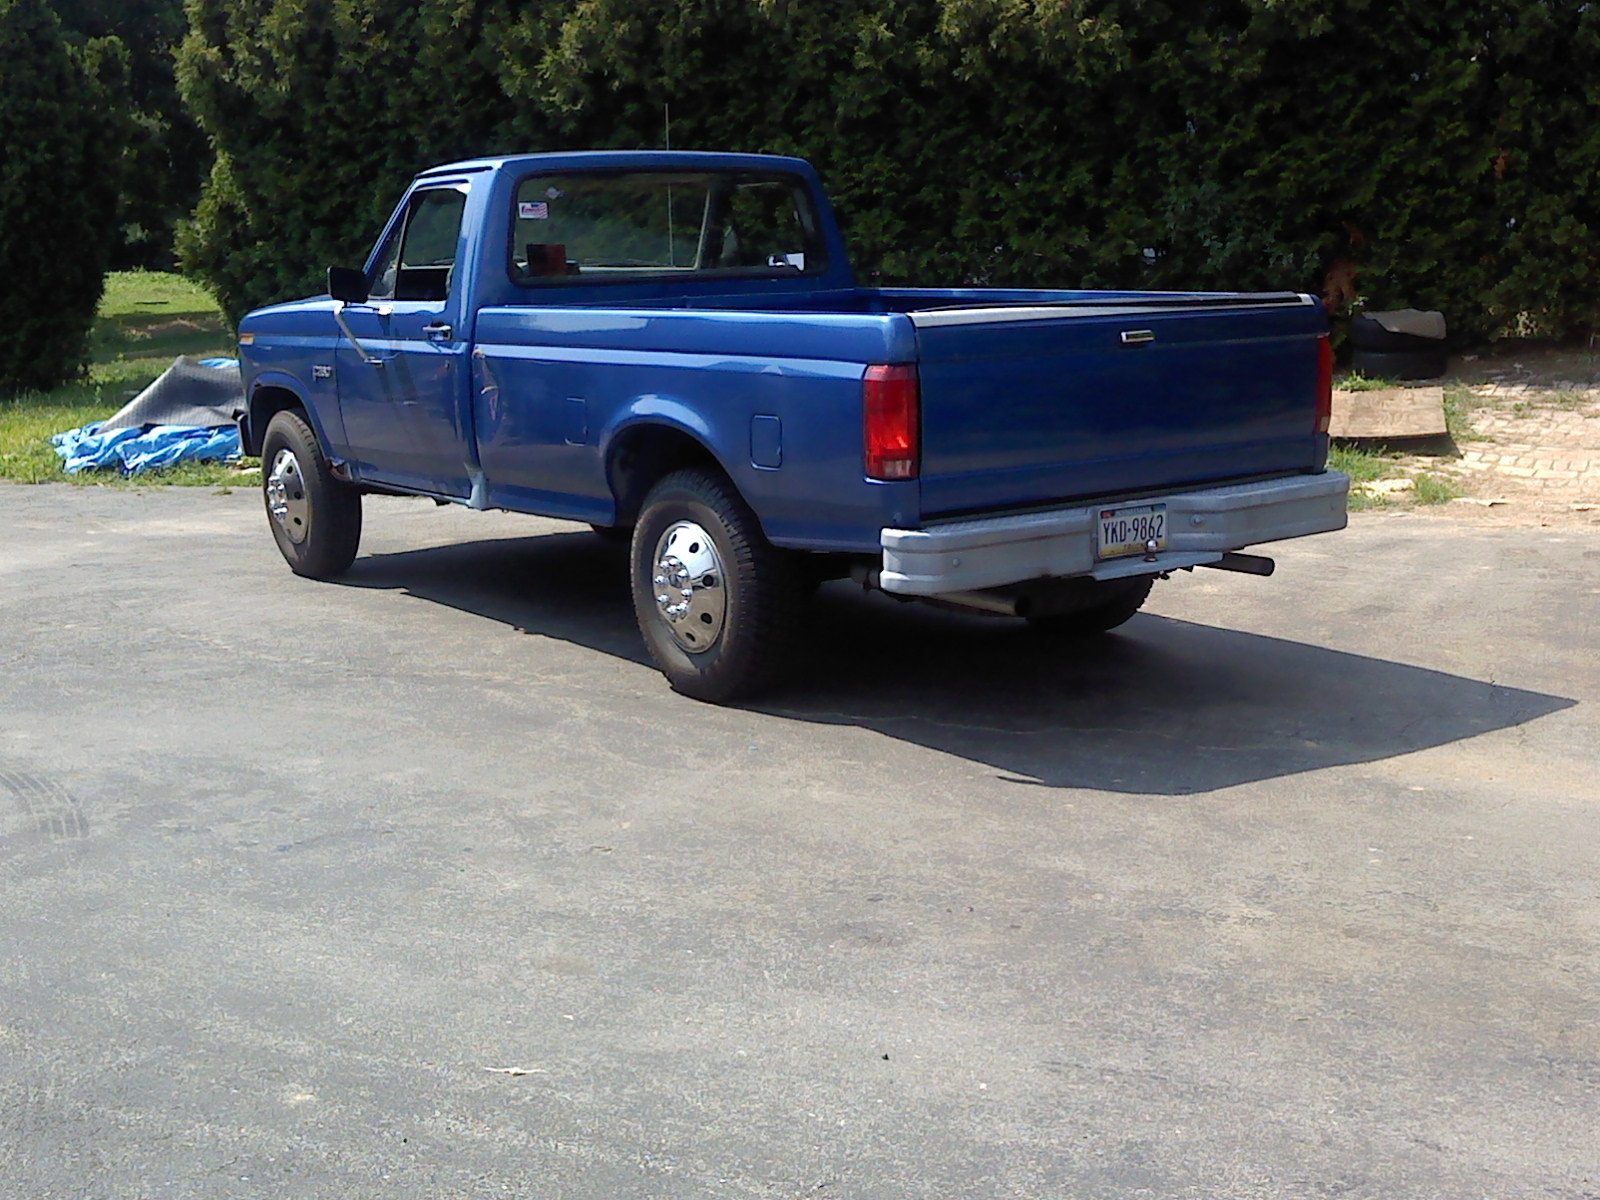 Anthrax50551 S 1985 Ford F250 Regular Cab In Downingtown Pa